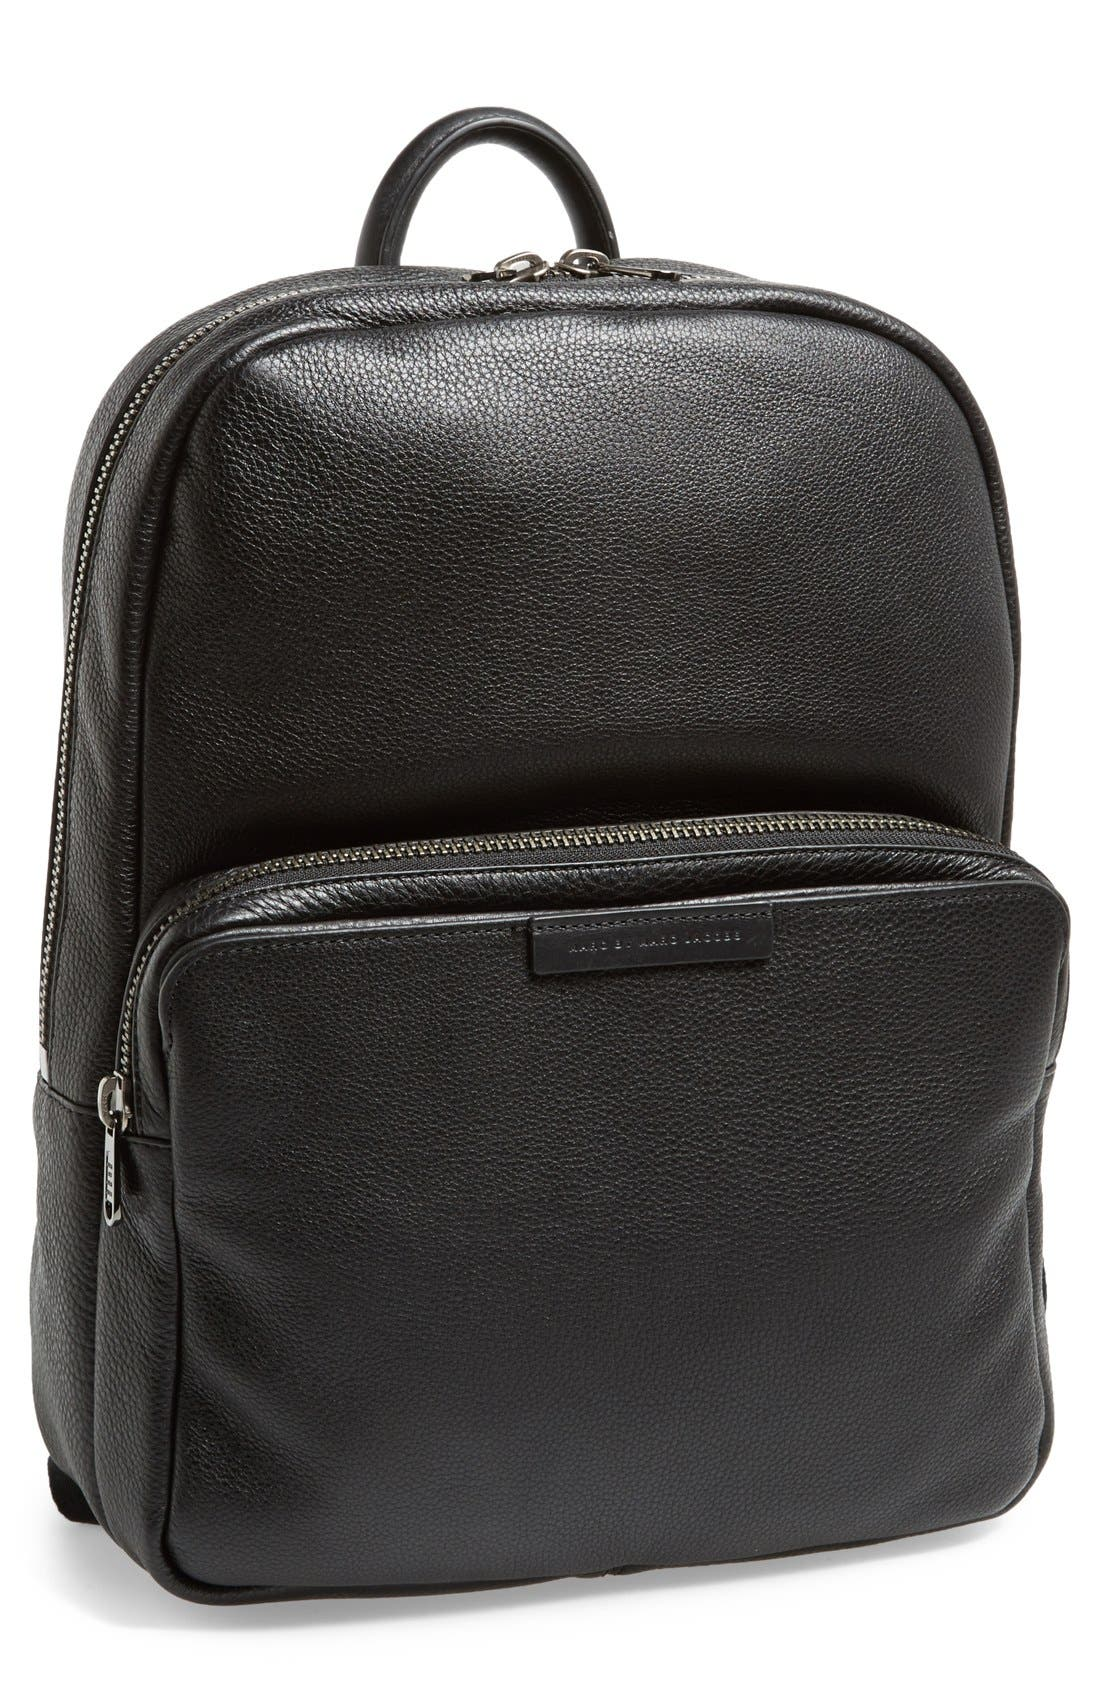 Main Image - MARC BY MARC JACOBS 'Classic' Leather Backpack